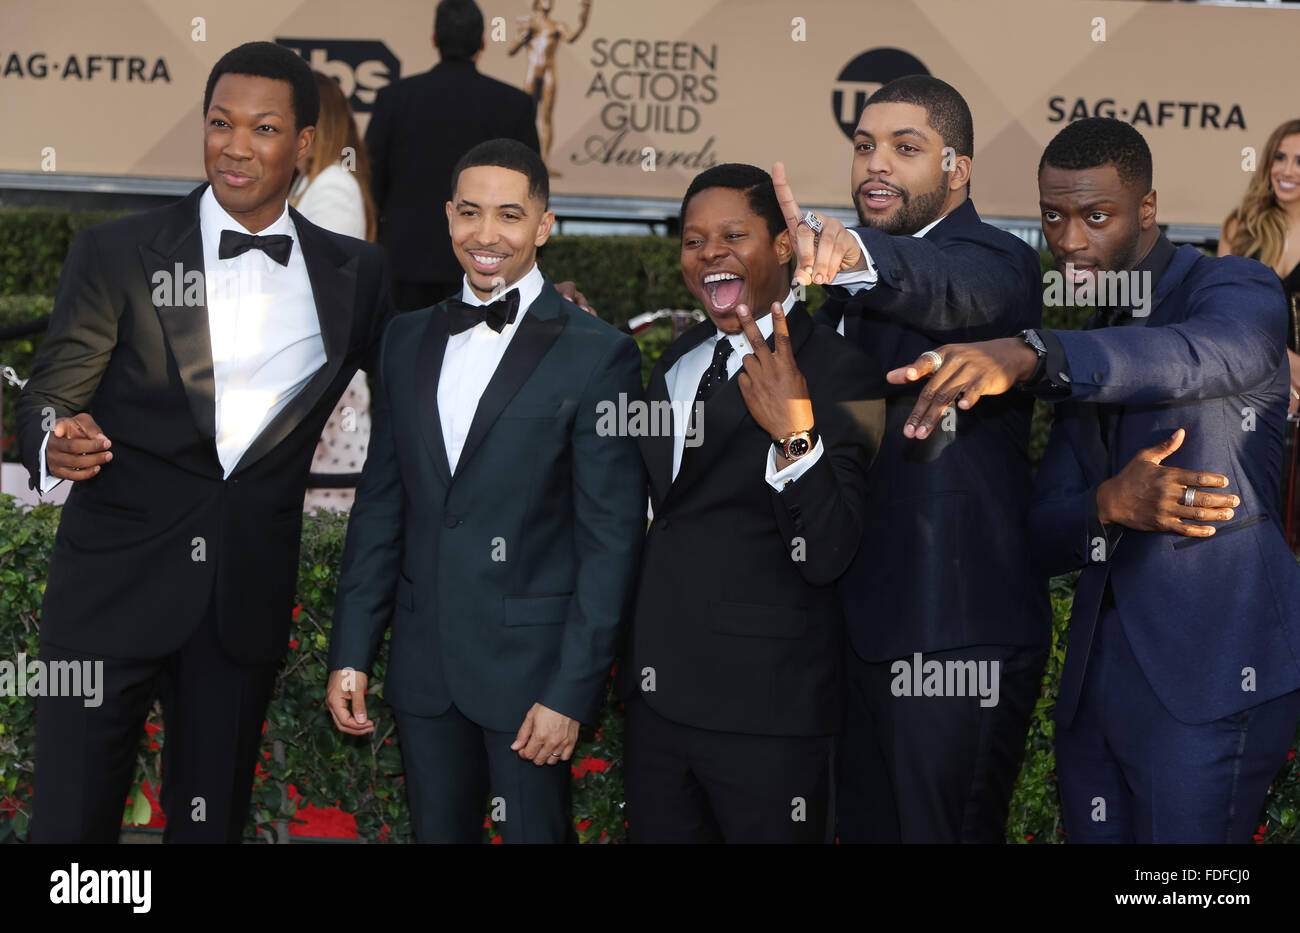 Actors Corey Hawkins, Neil Brown Jr., Jason Mitchell, O'Shea Jackson Jr. and Aldis Hodge attend the 22nd Annual Stock Photo